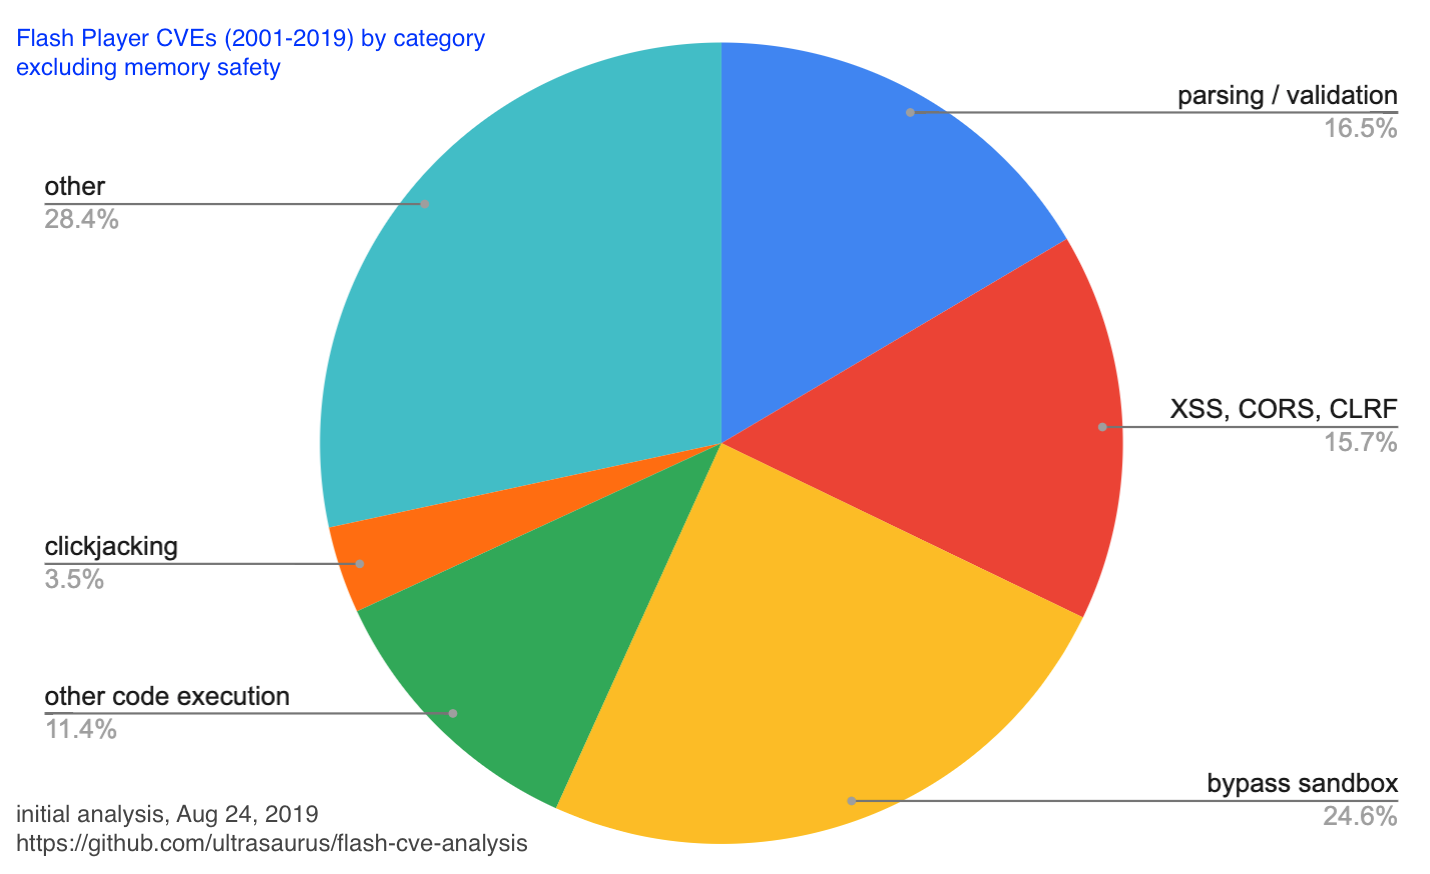 pie chart excluding memory safety shows 16% parsing / validation